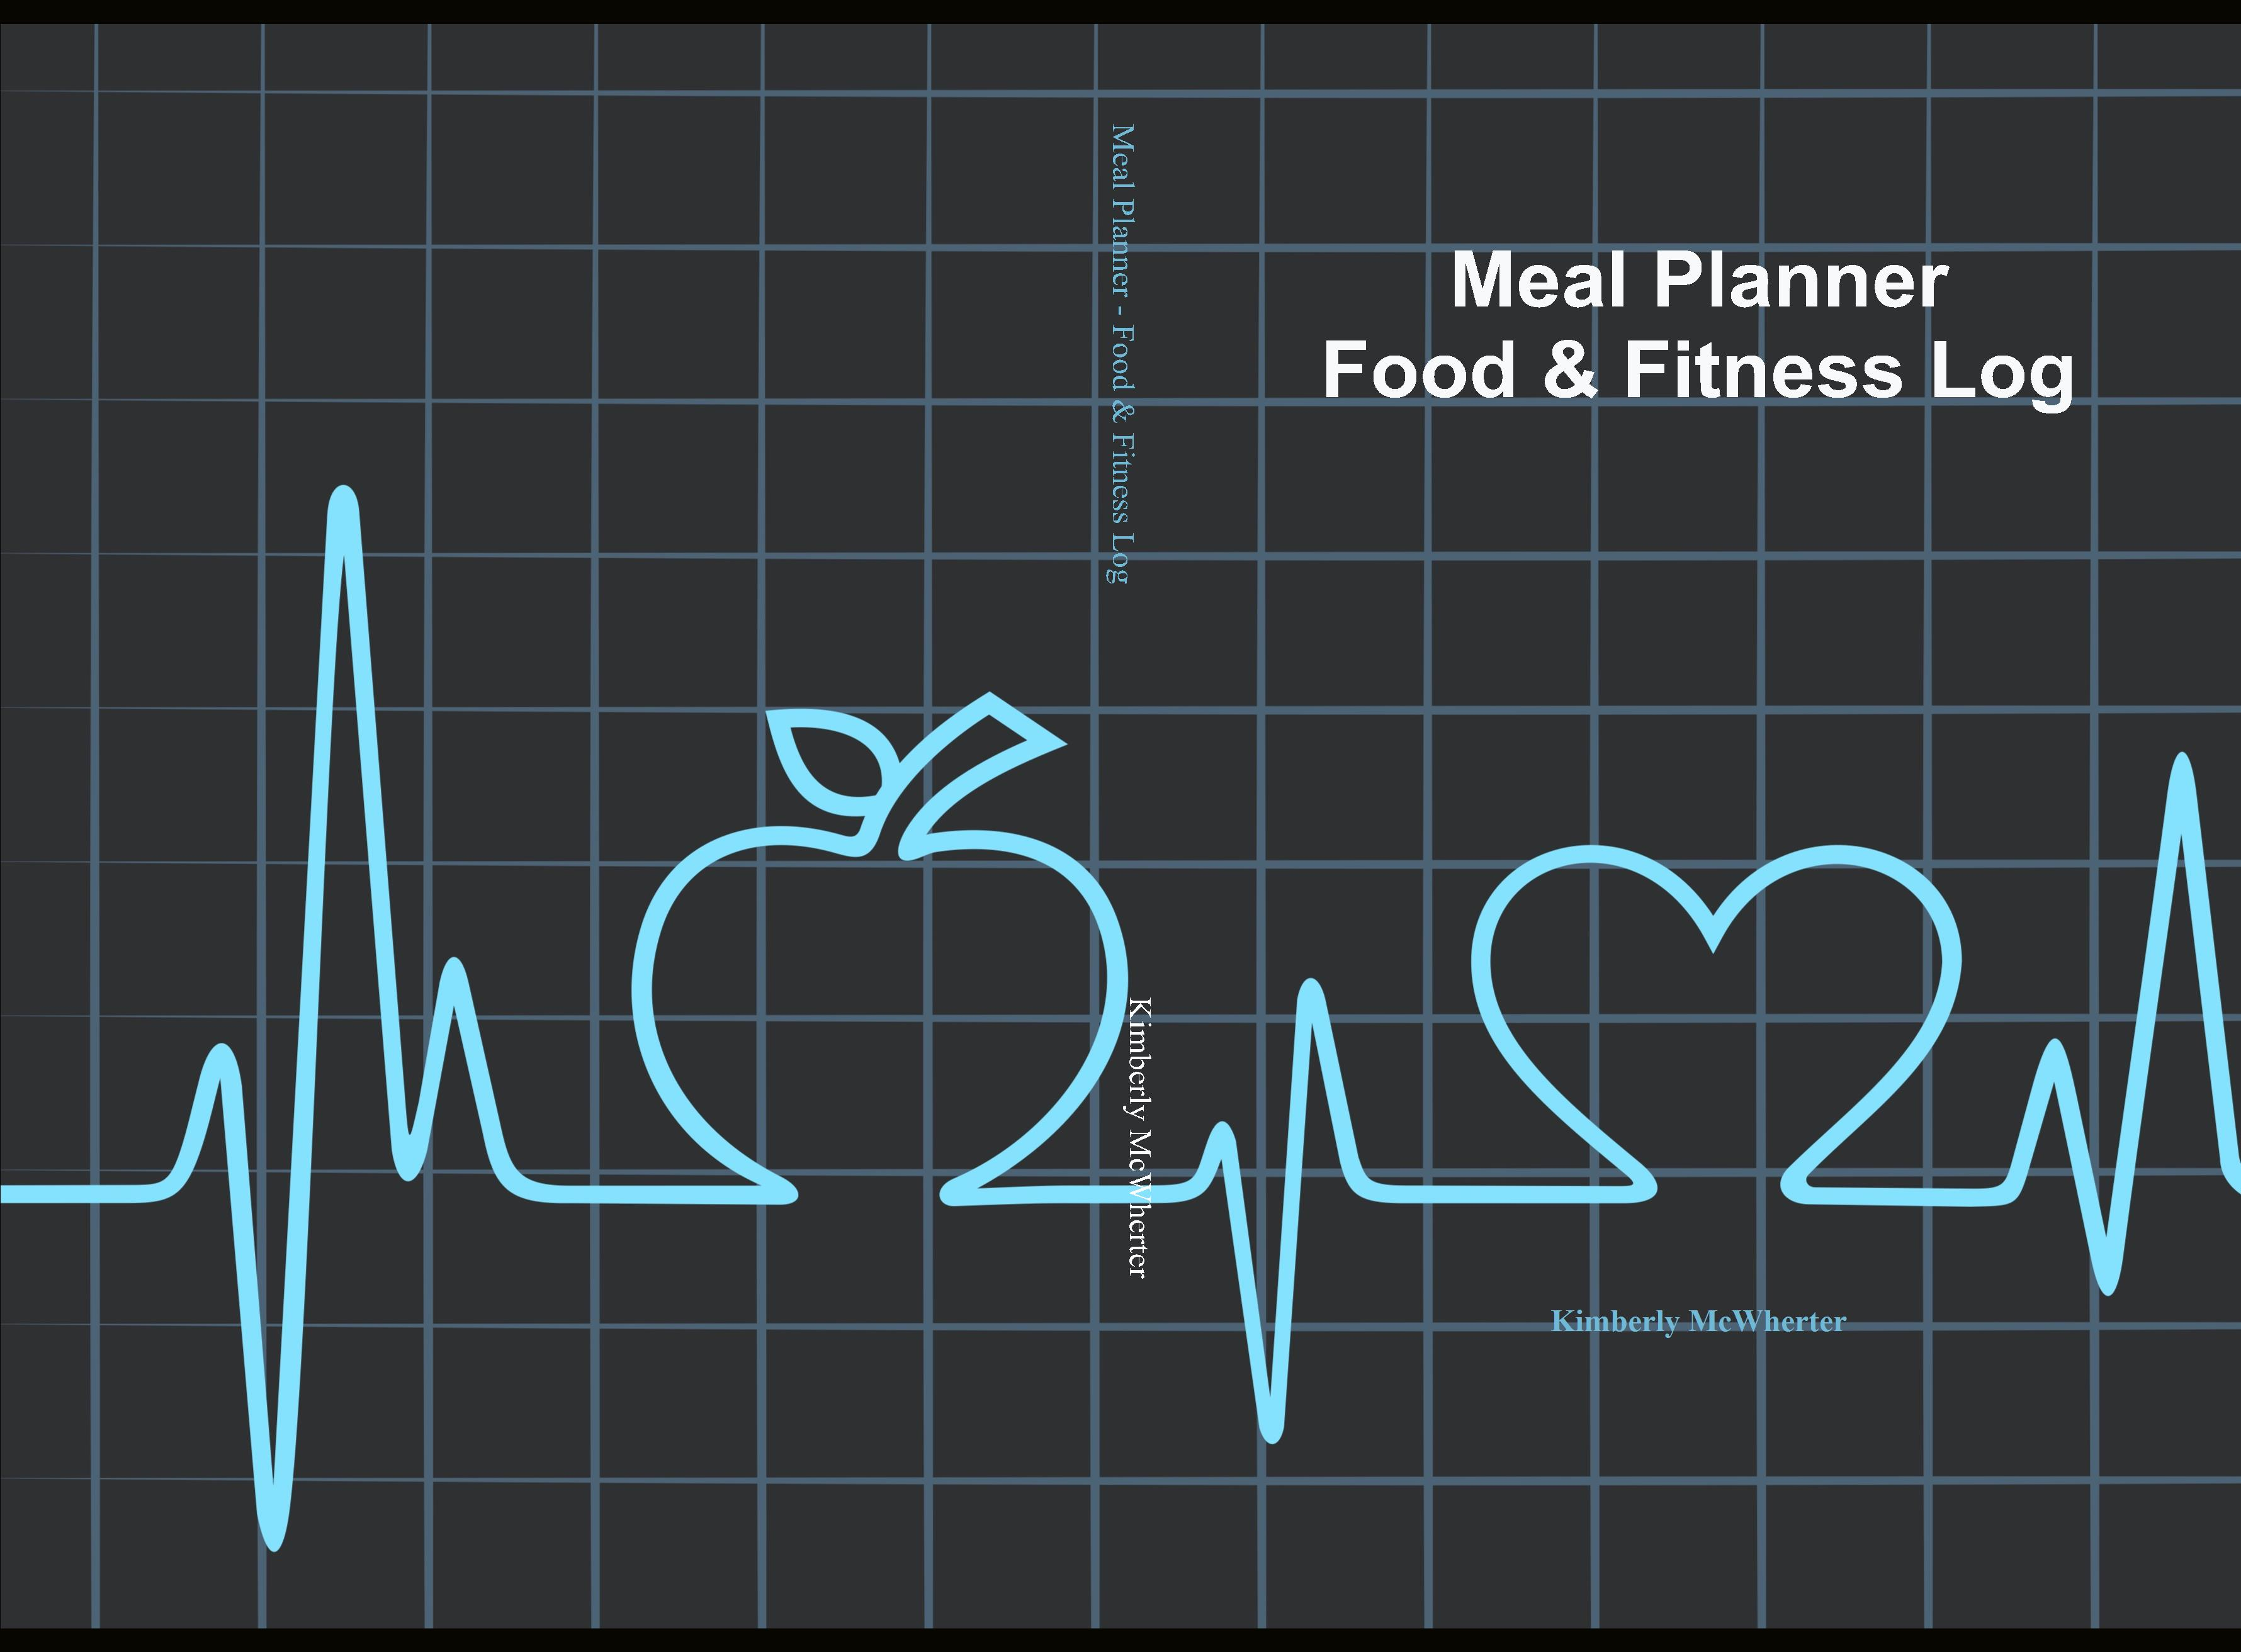 Meal Planner Food & Fitness Log cover image